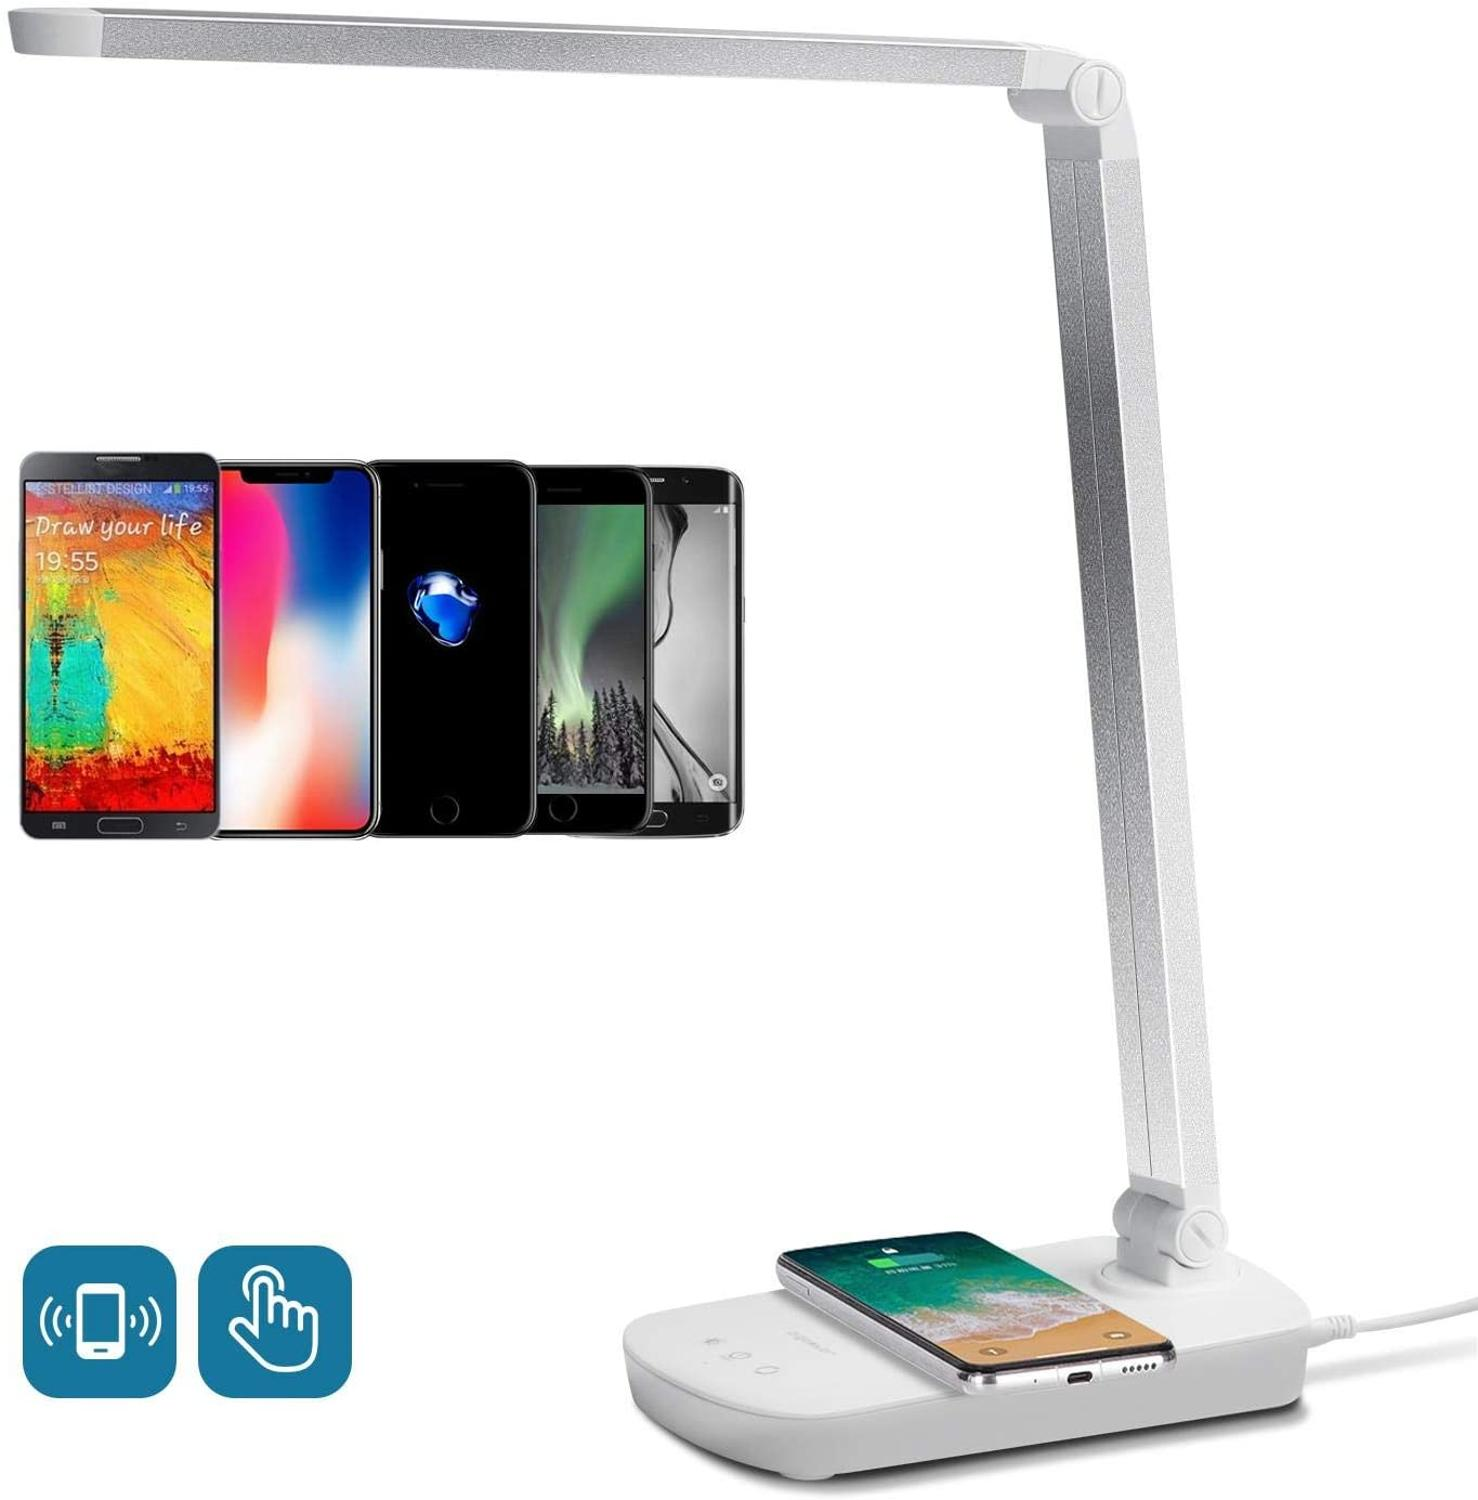 Aigostar Mona LED Desk Lamp, Table Lamp With QI Wireless Charging For Smartphone. 3 Dimmable Levels, 3 Gradual Color Modes